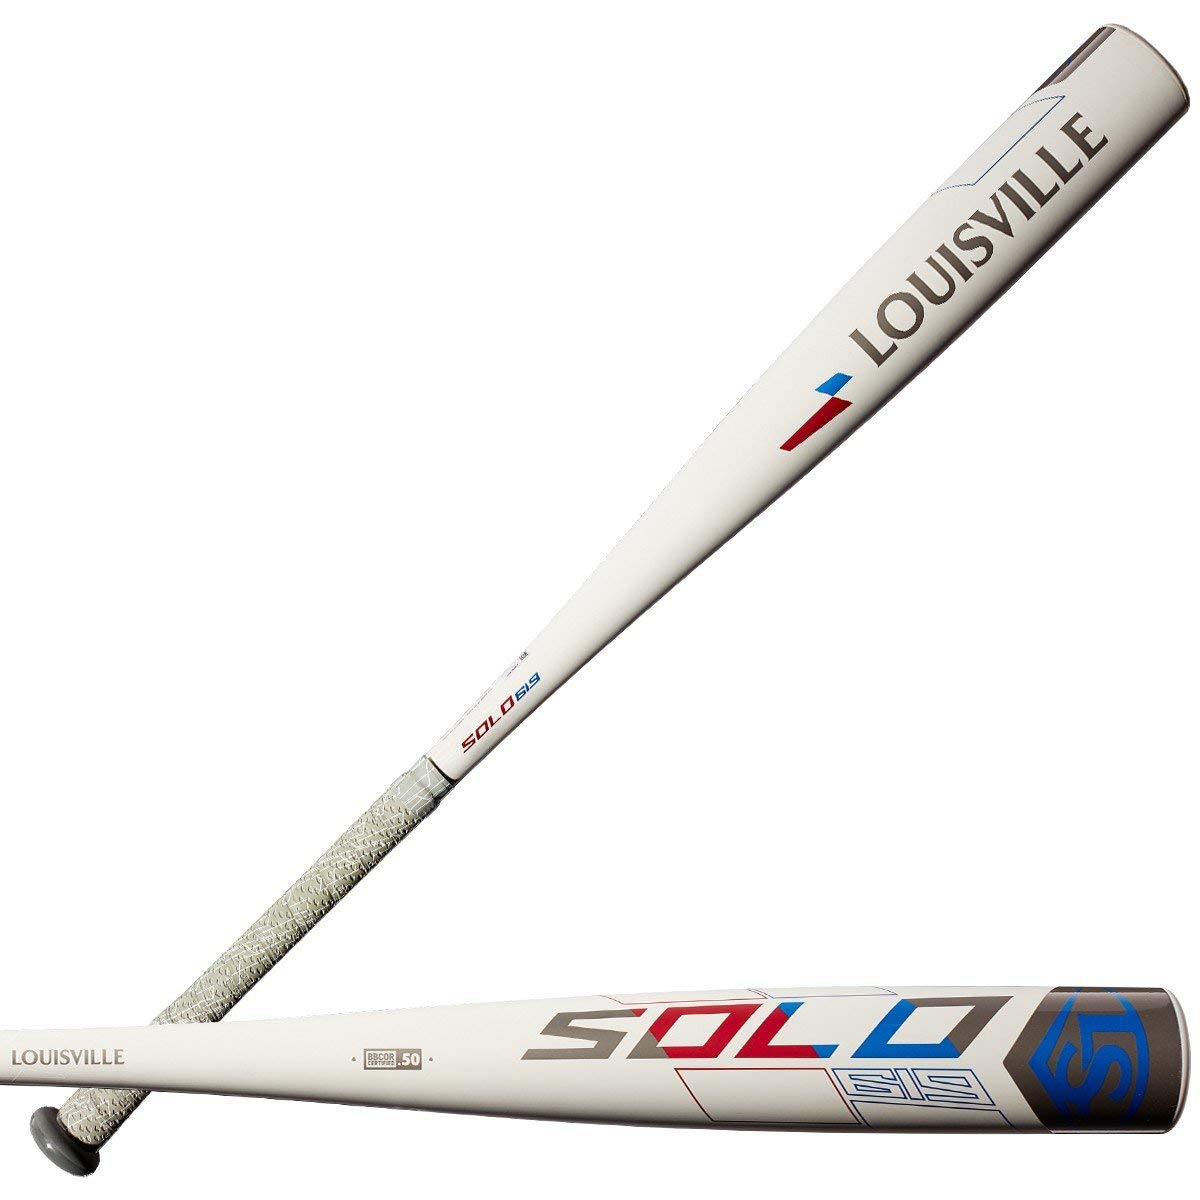 louisville-slugger-2019-solo-619-3-bbcor-baseball-bat-33-inch-30-oz WTLBBS619B333 Louisville 887768712785 The new Solo 619 brings the speed you need in your